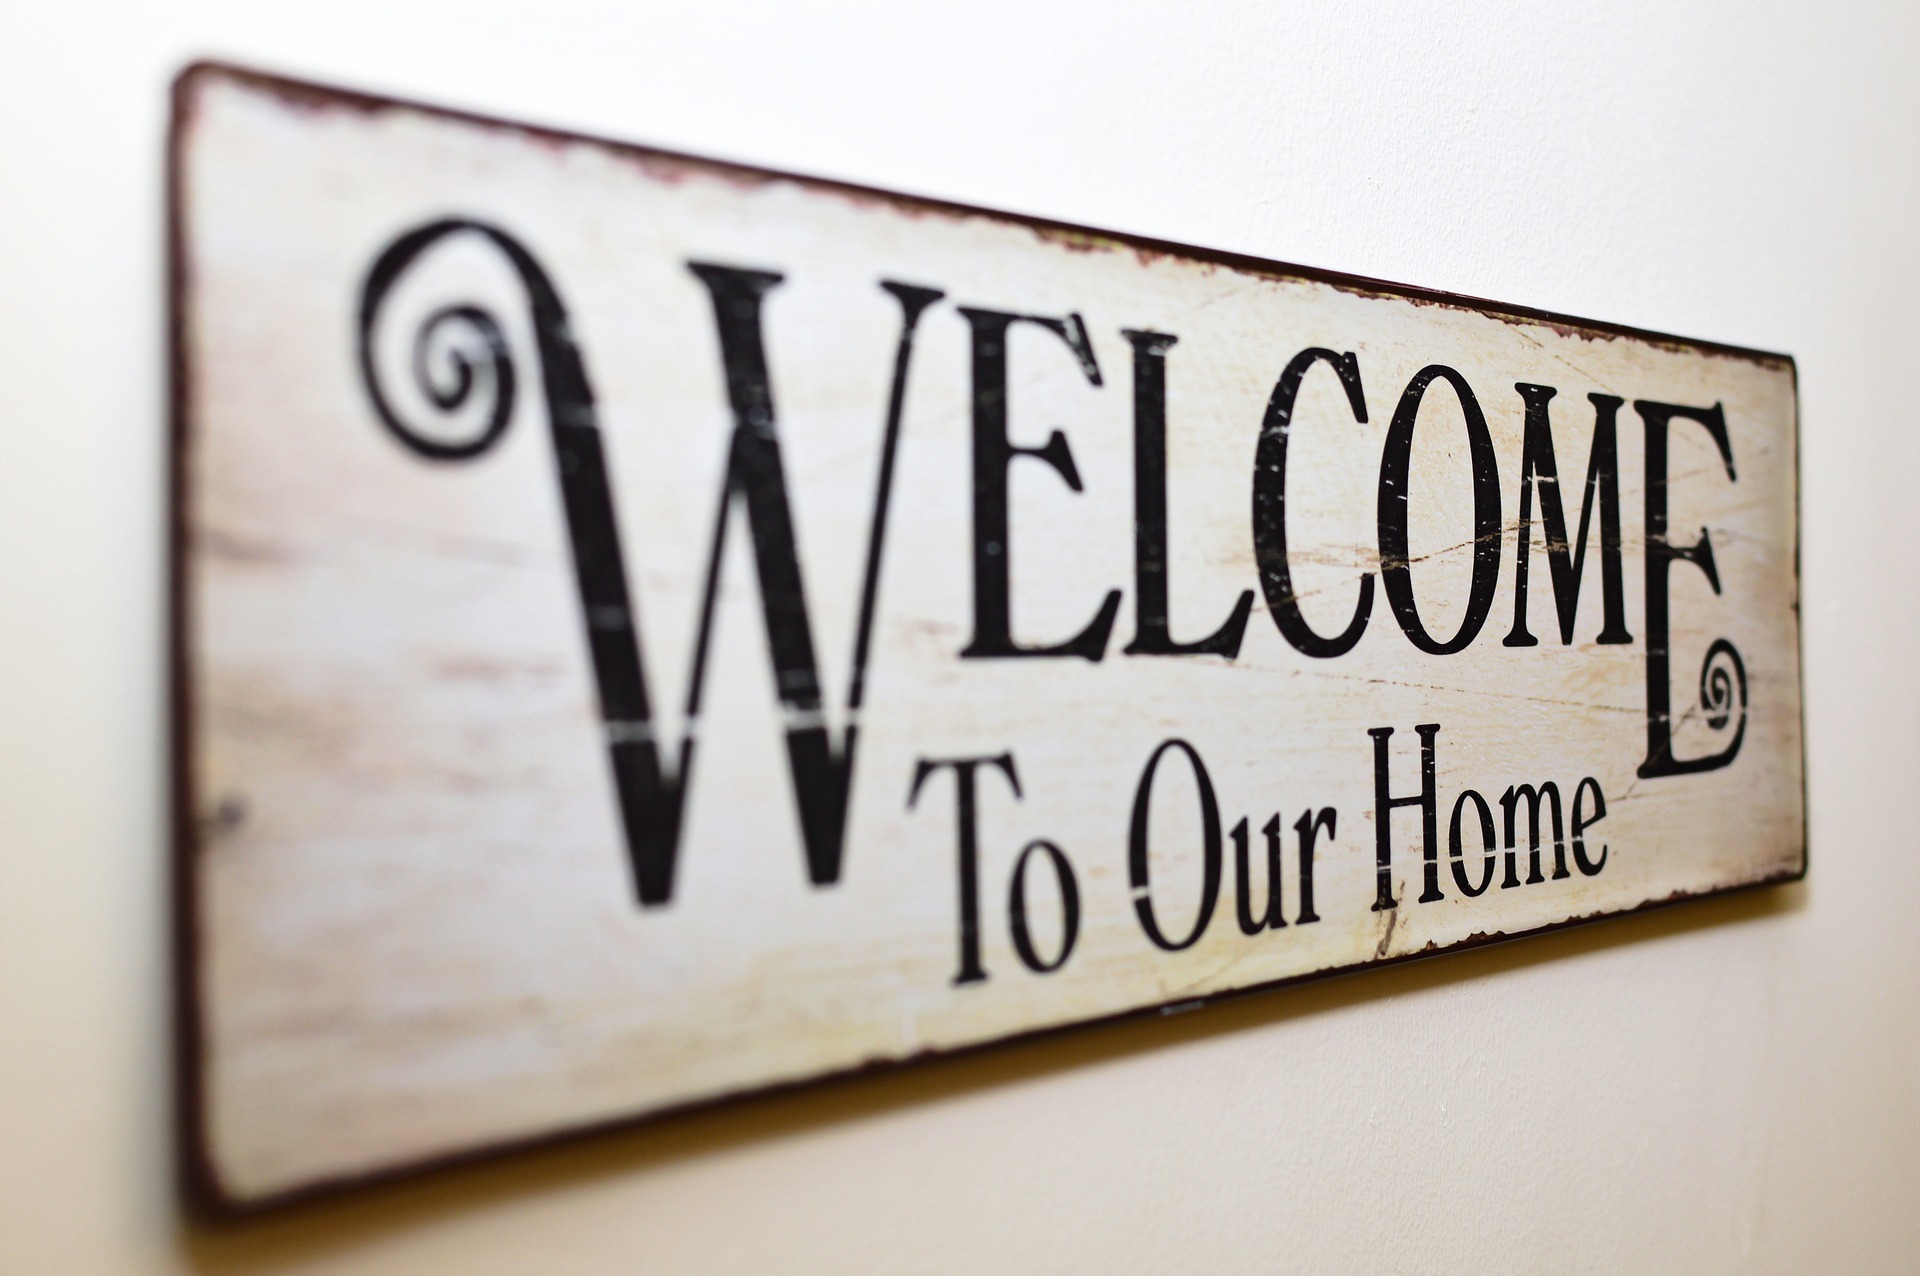 Cartel con Welcome our home